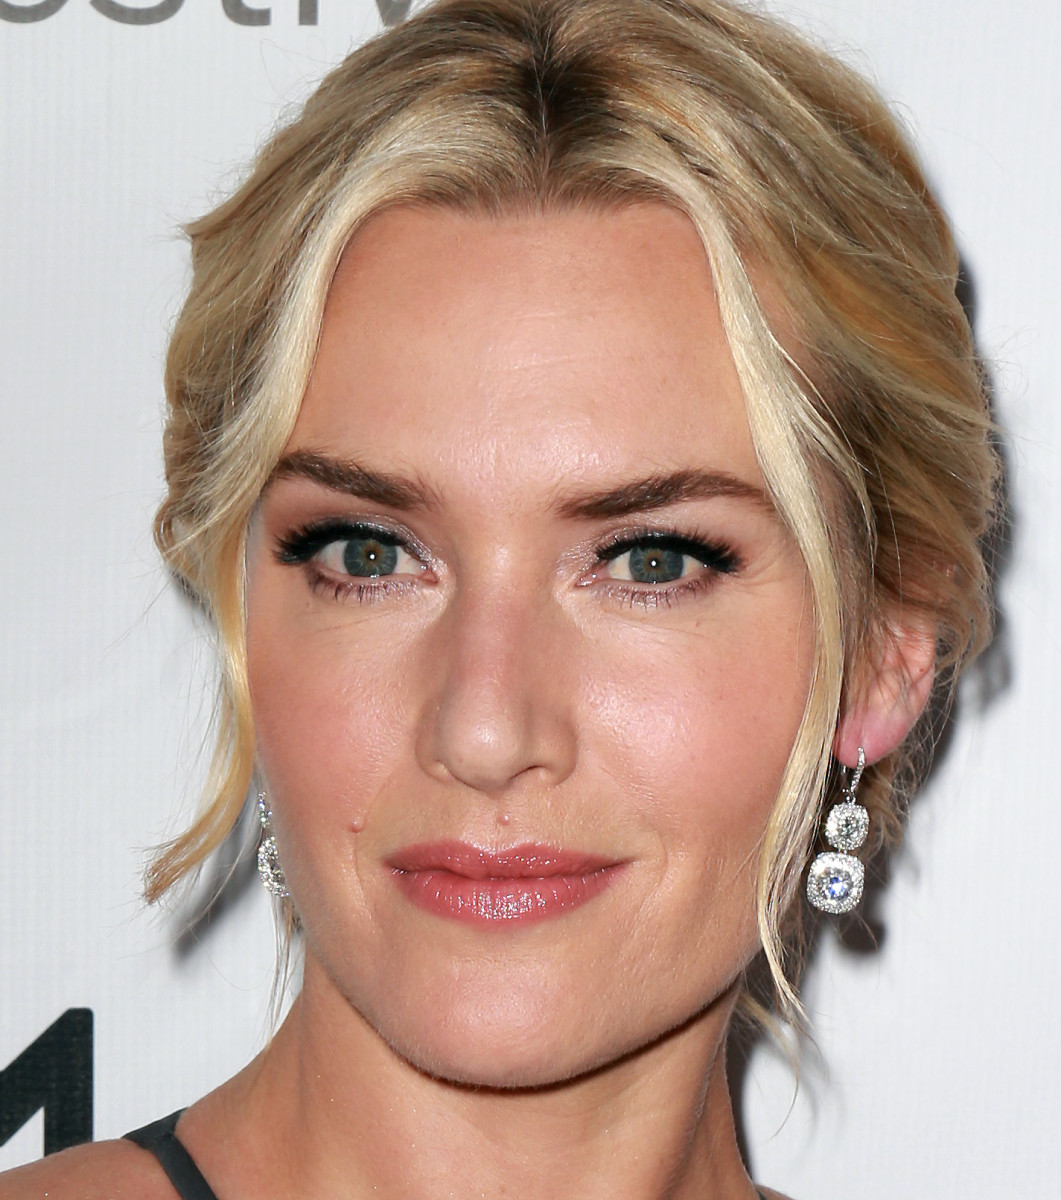 Kate Winslet's makeup at TIFF 2015